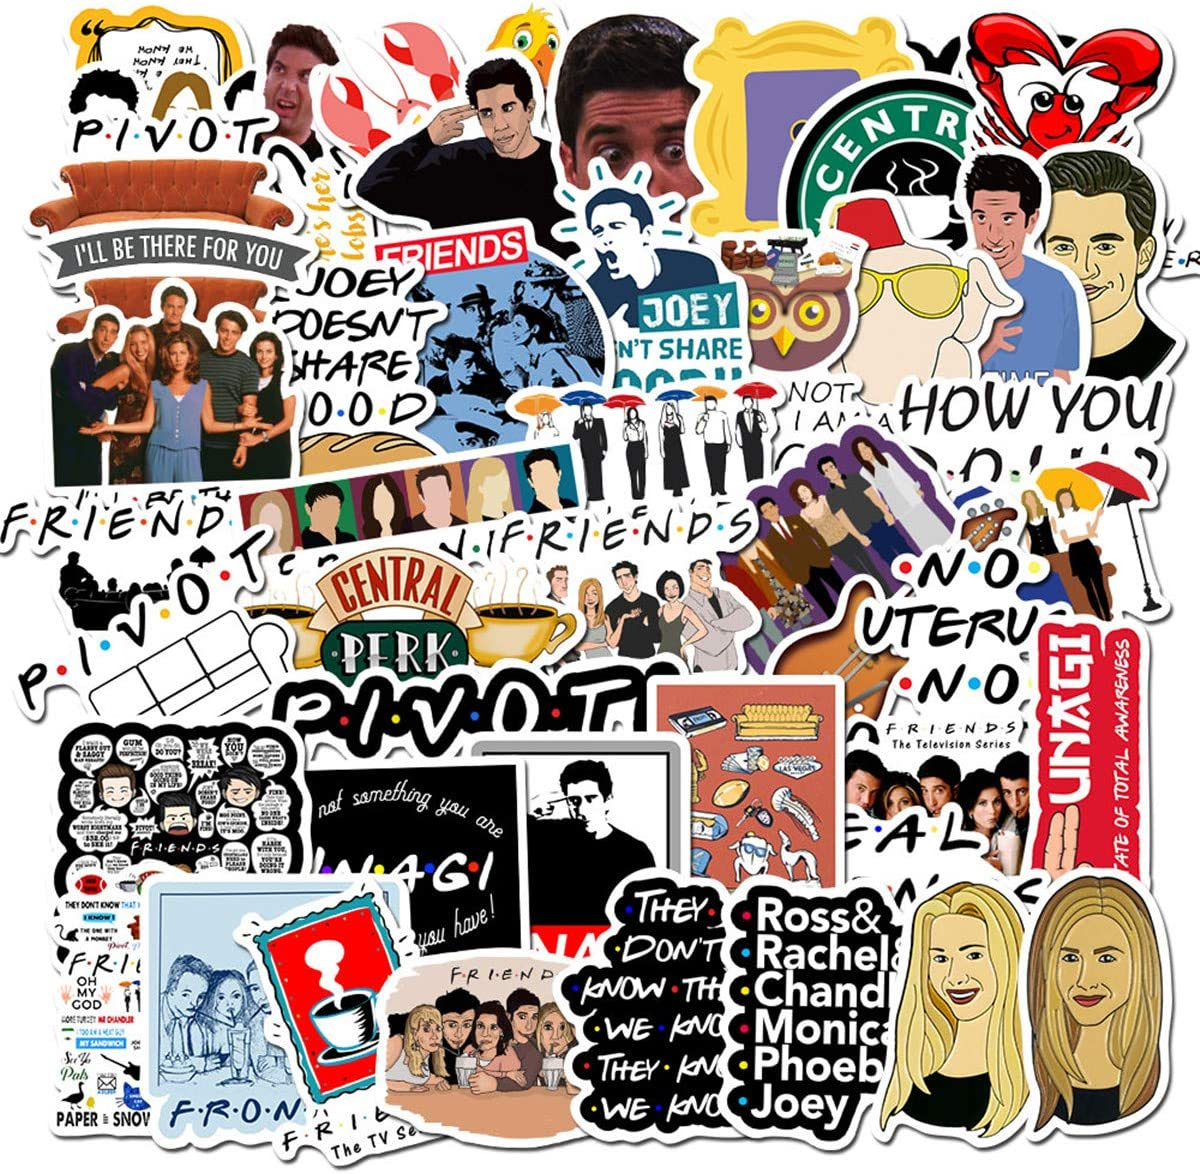 50PCS Movie Friends Themed Vinyl Stickers for Personalize Laptop, Car, Helmet, Skateboard, Luggage Graffiti Decals (Friends)